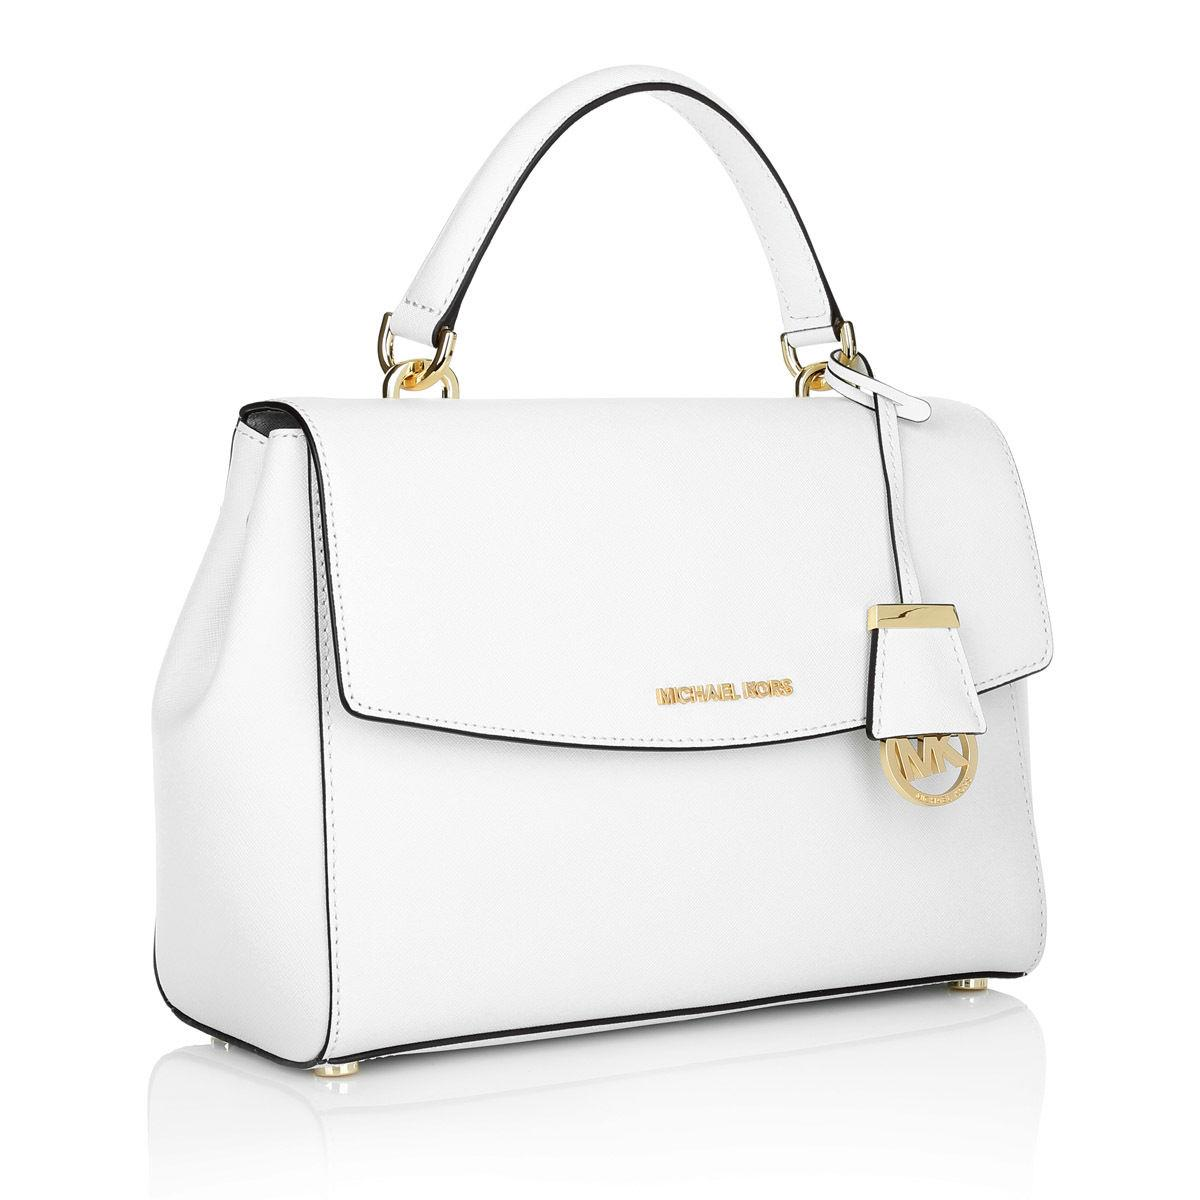 eaa1c0883e22 ... discount michael kors ava small handbag satchel in optic white 85d0d  35021